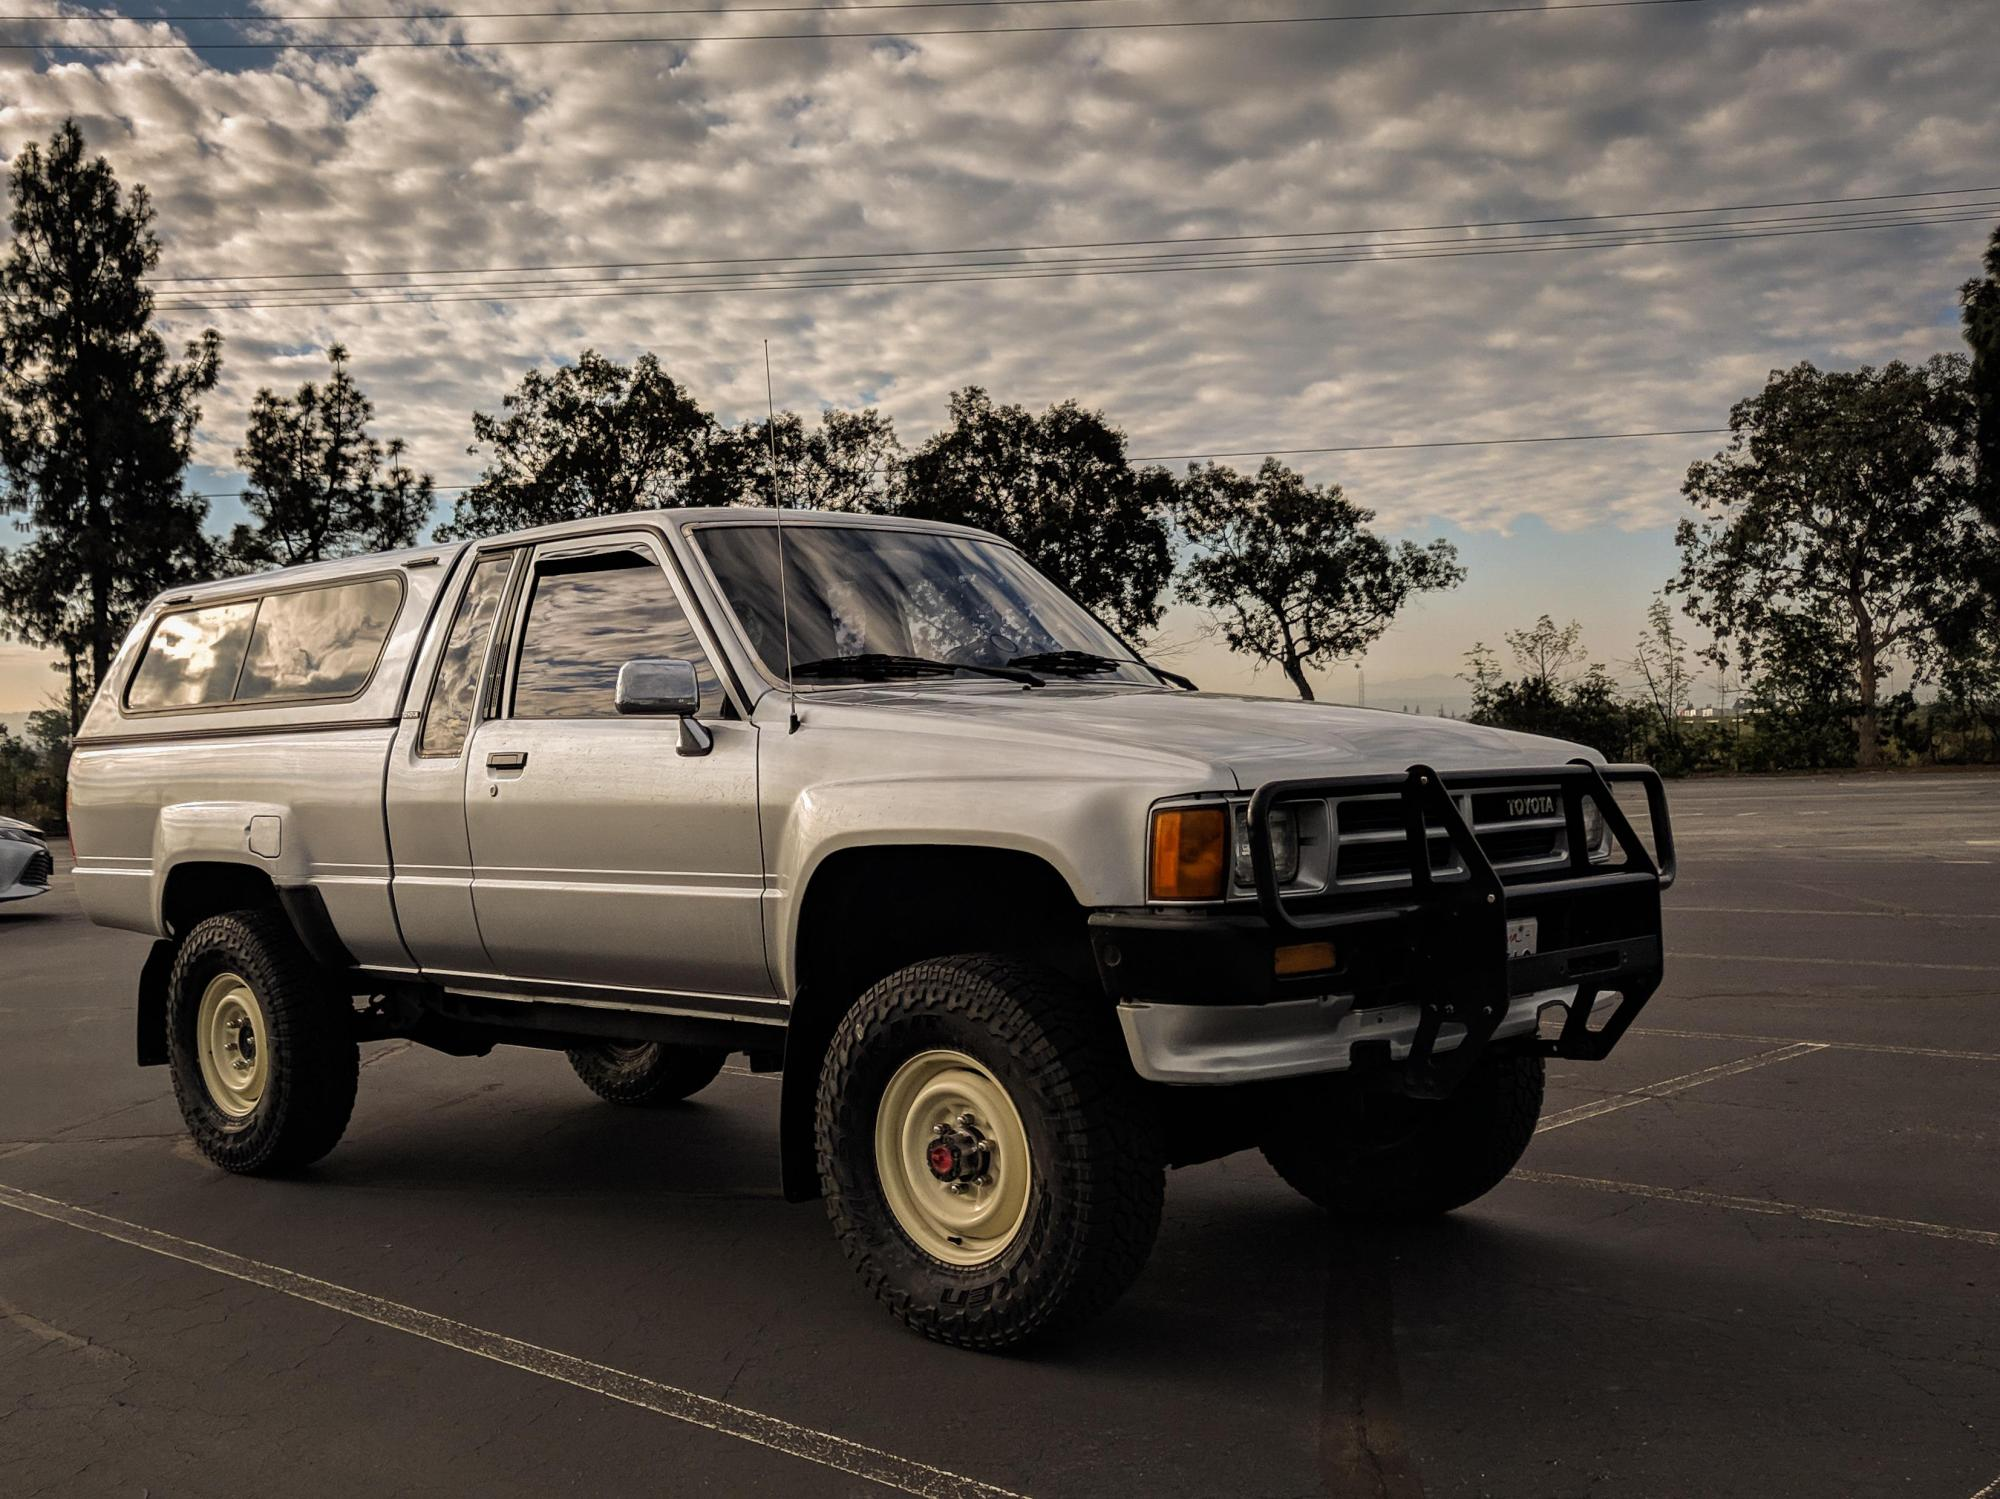 hight resolution of my 1987 toyota truck working on getting a 3rd gen tacoma